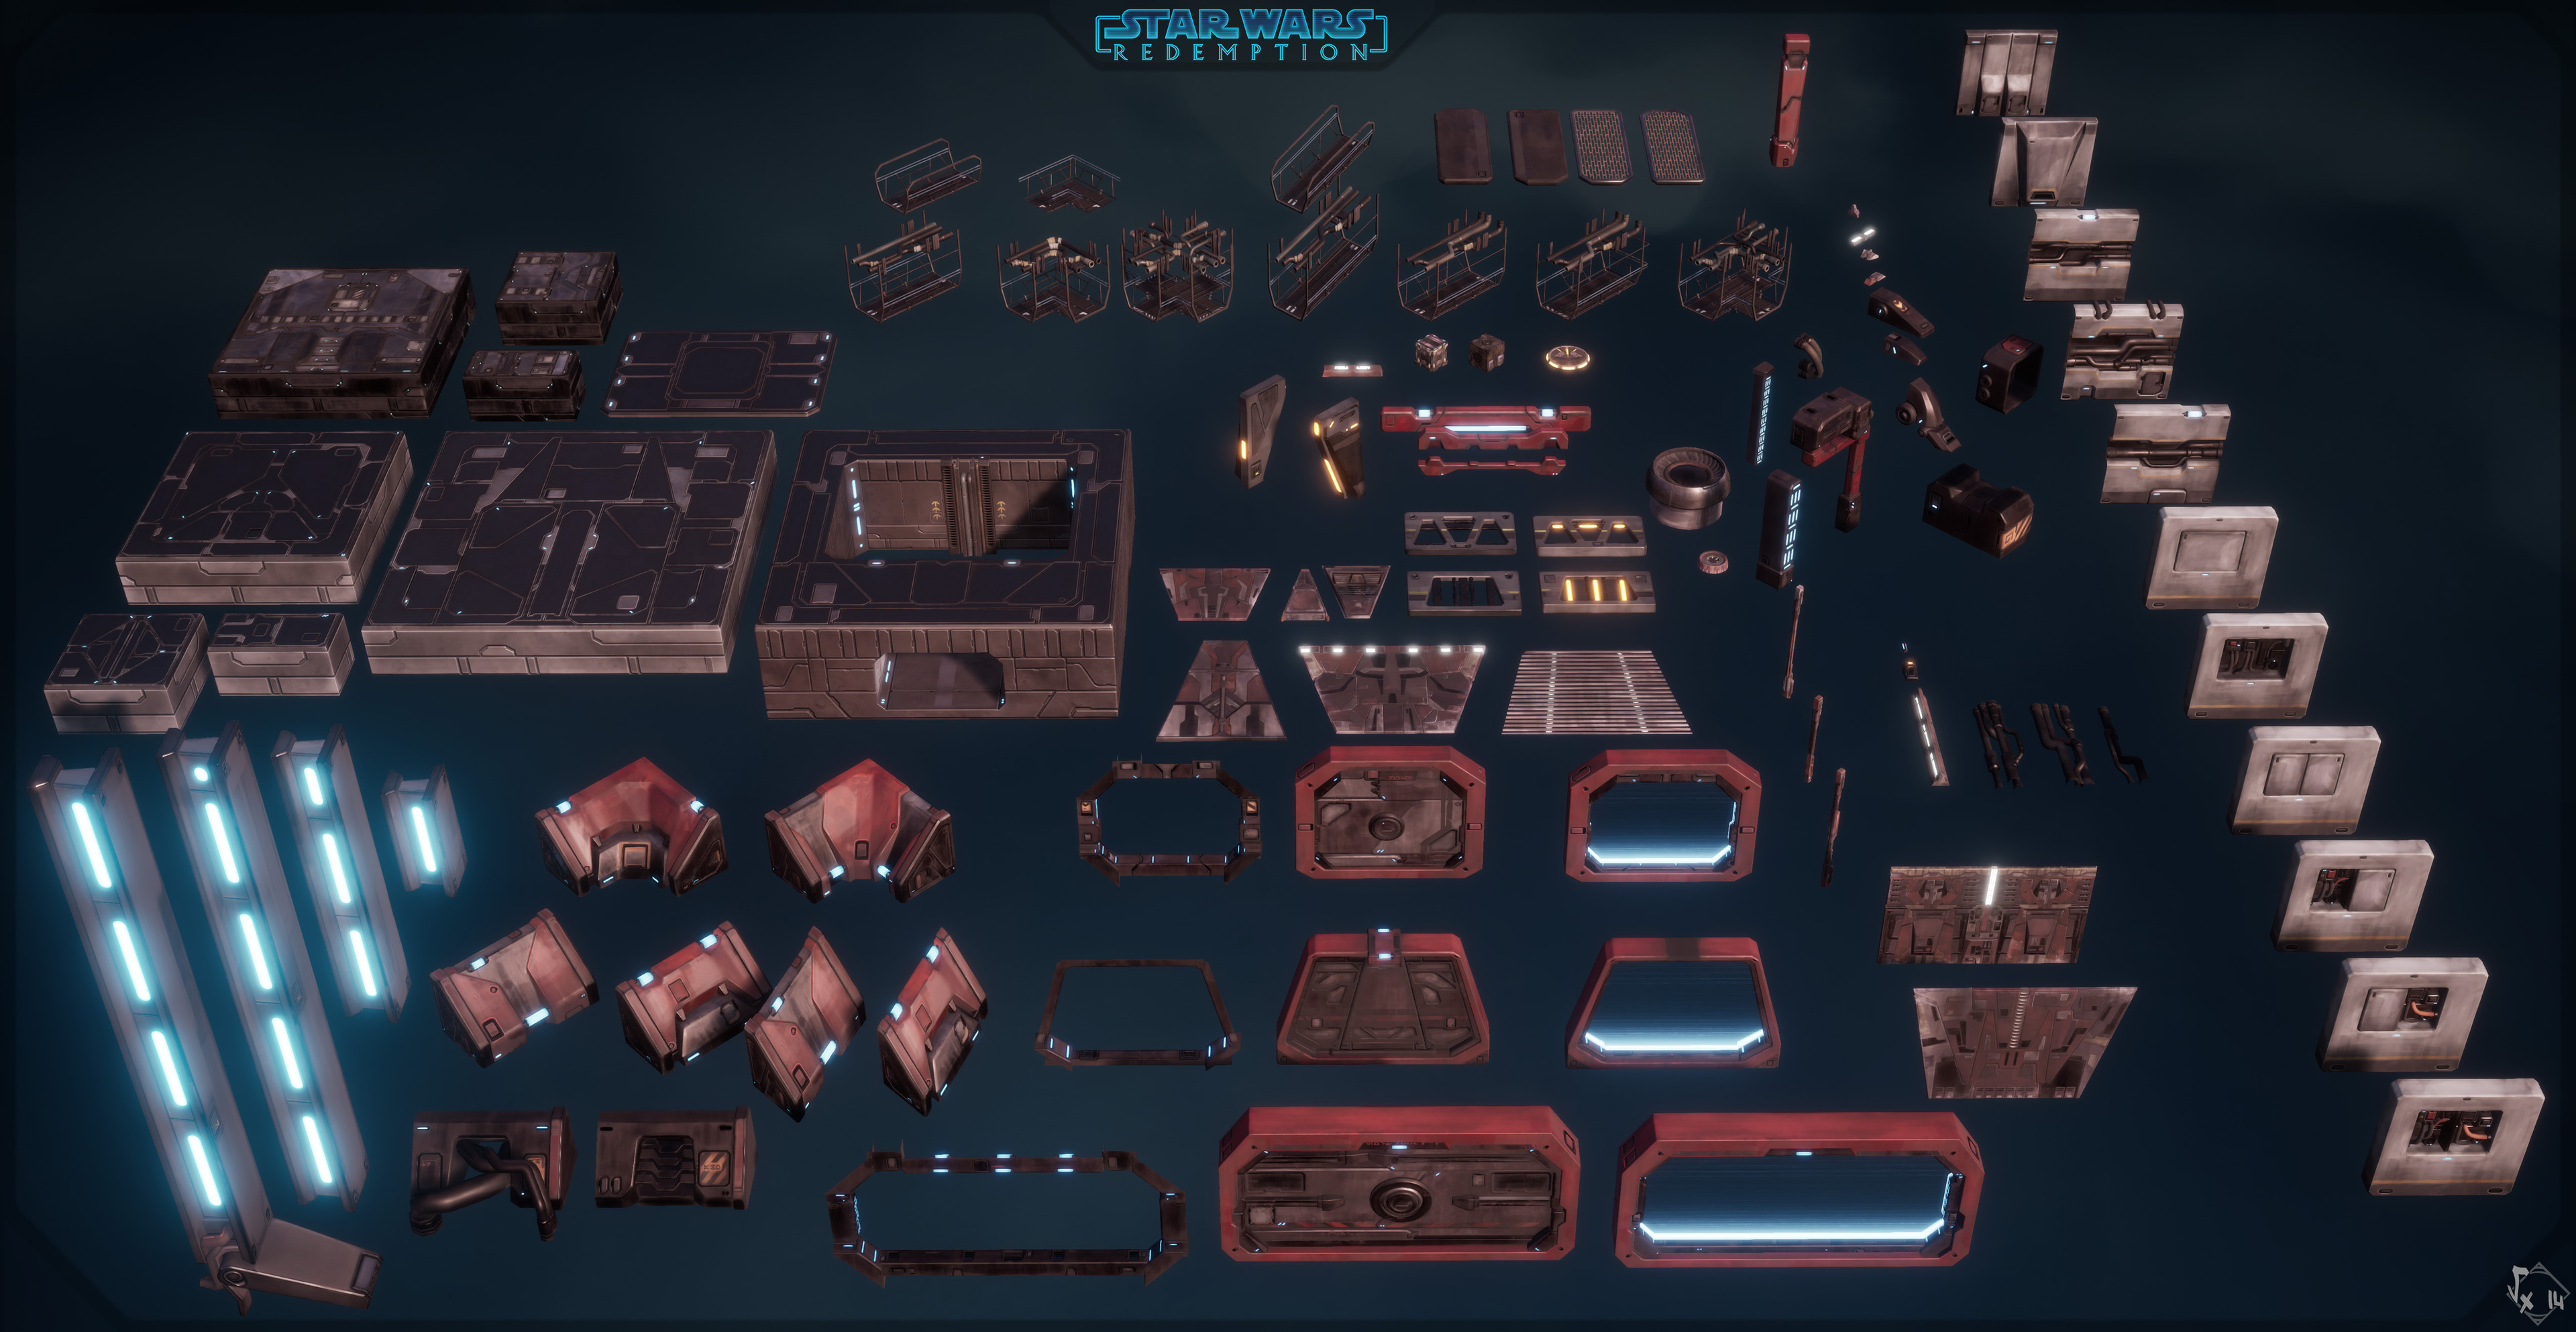 Venator's props, used to make path aswell as corridors and set dress/connections/polish...